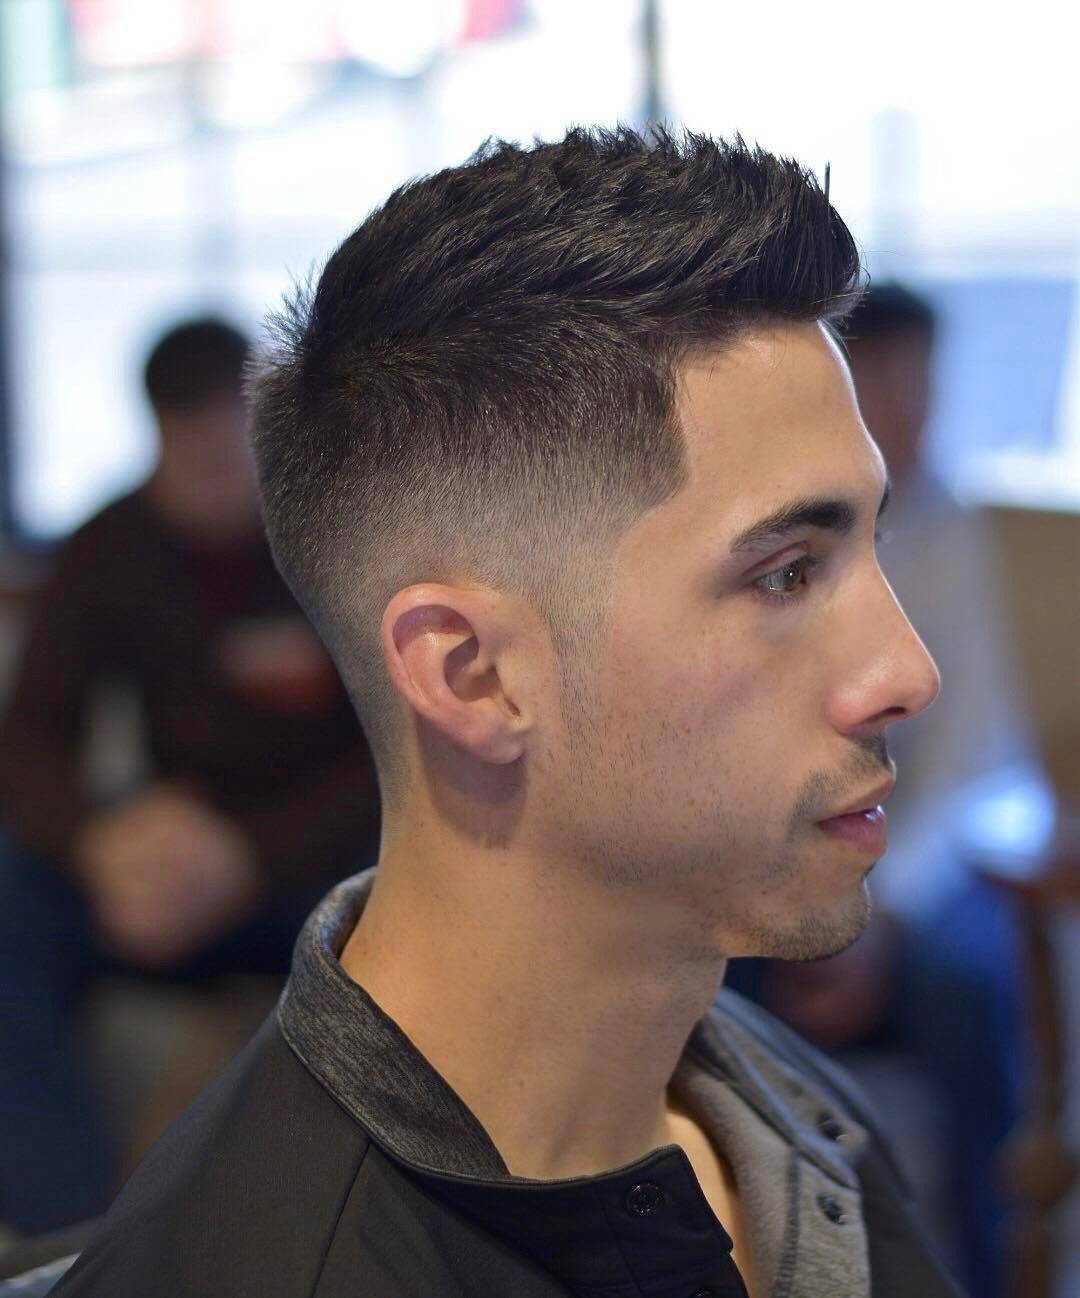 Classy haircuts for men  amazing military haircut styles for guys tags military haircuts